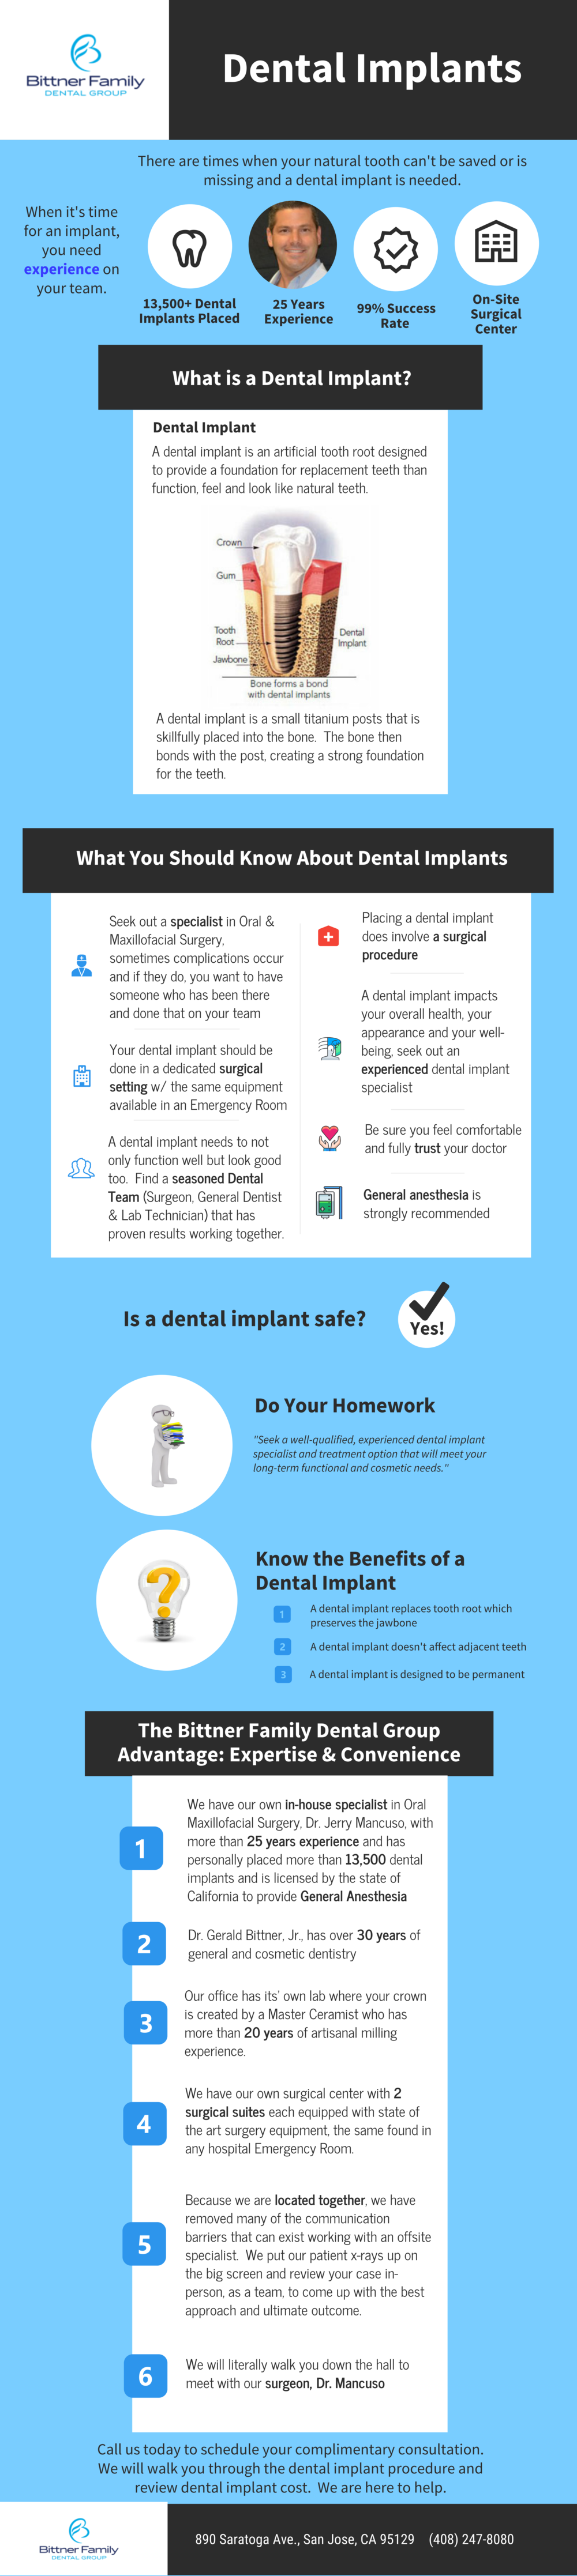 What is a Dental Implant? Learn More